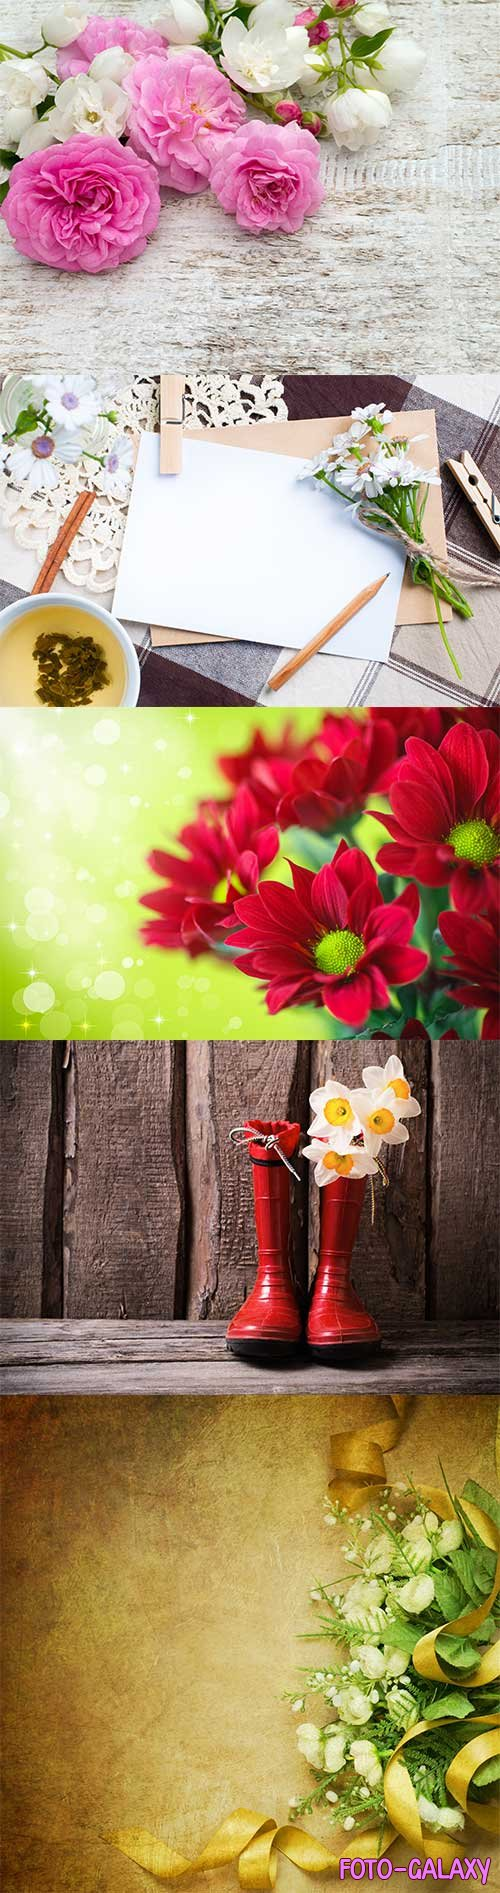 Background cards with flowers